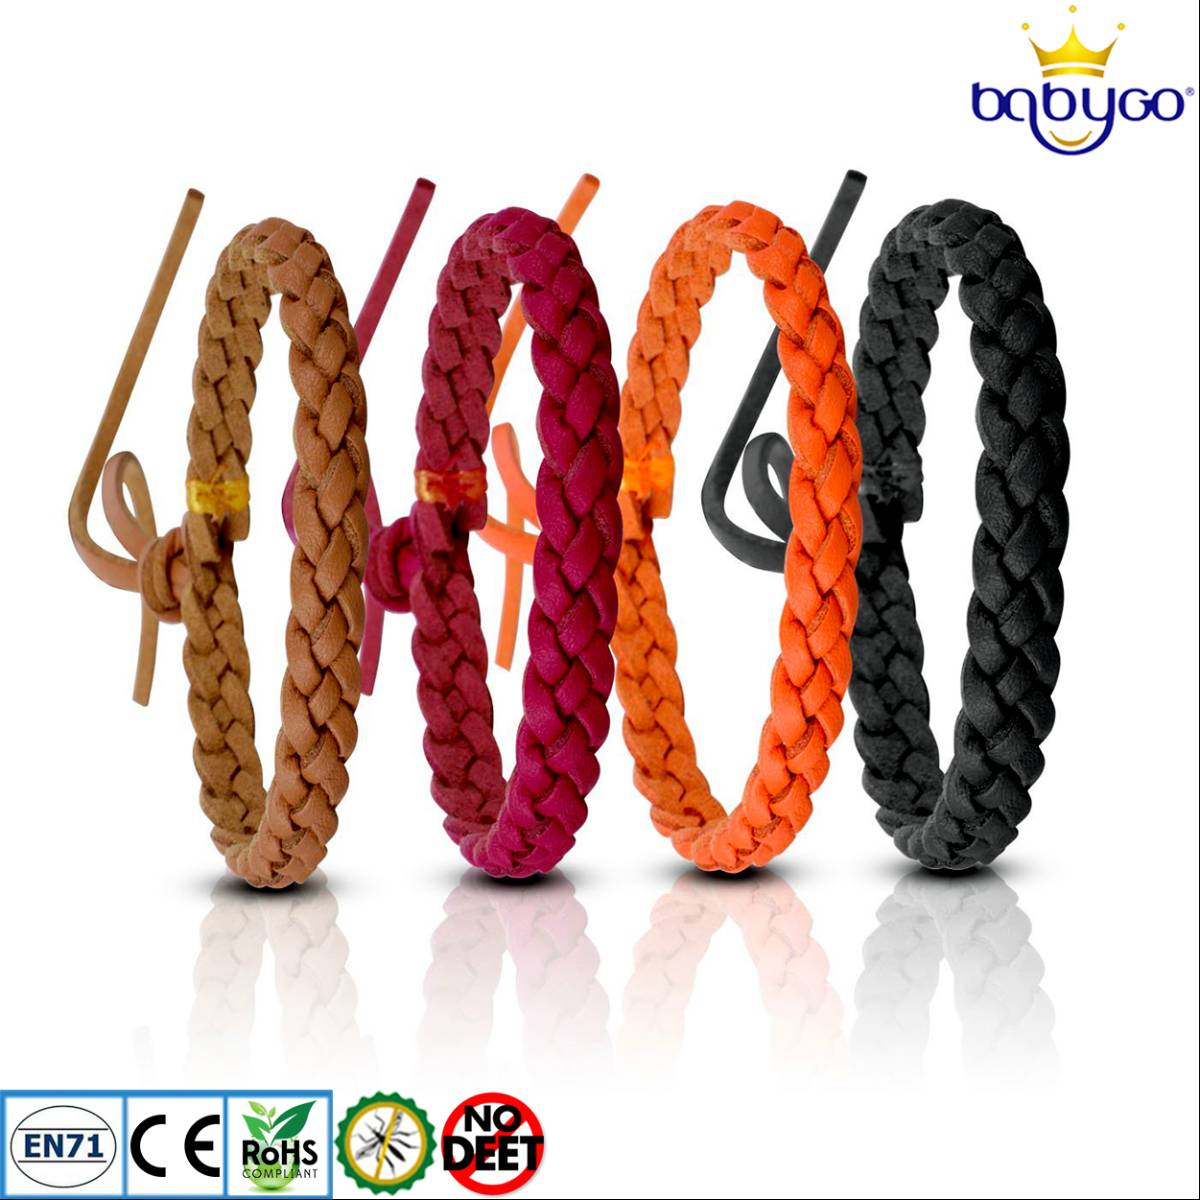 Babygo Leather Mosquito Repellent Bracelet (gelang Anti Nyamuk Kulit)0